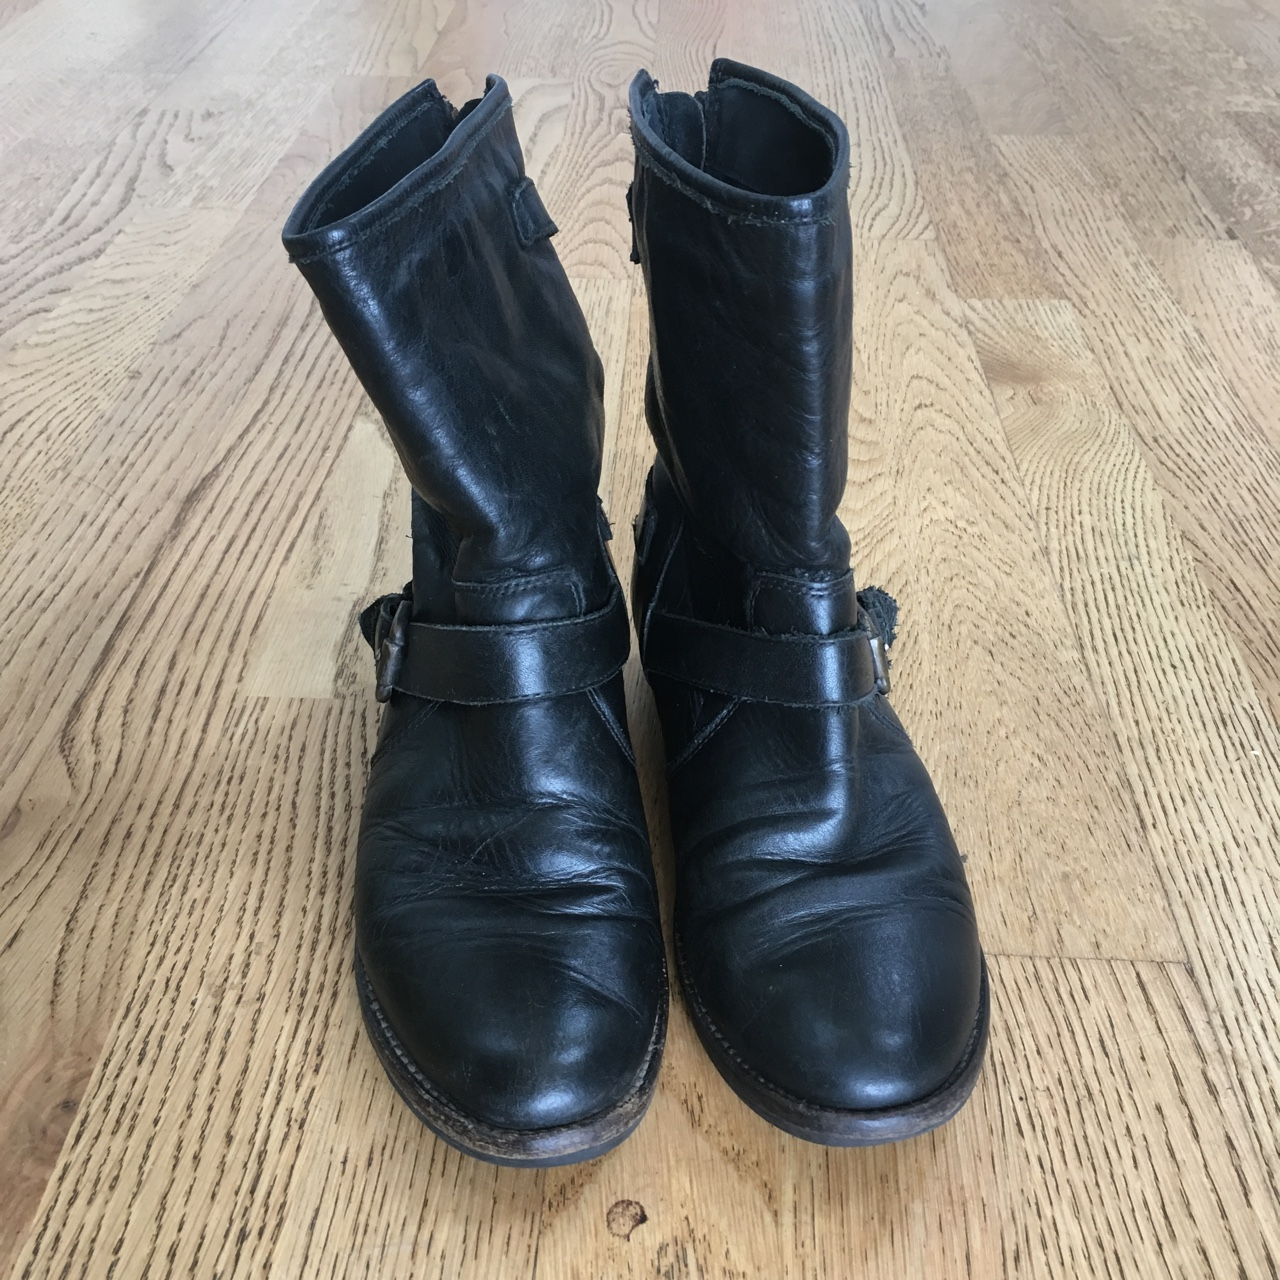 Dune black leather biker boots in size